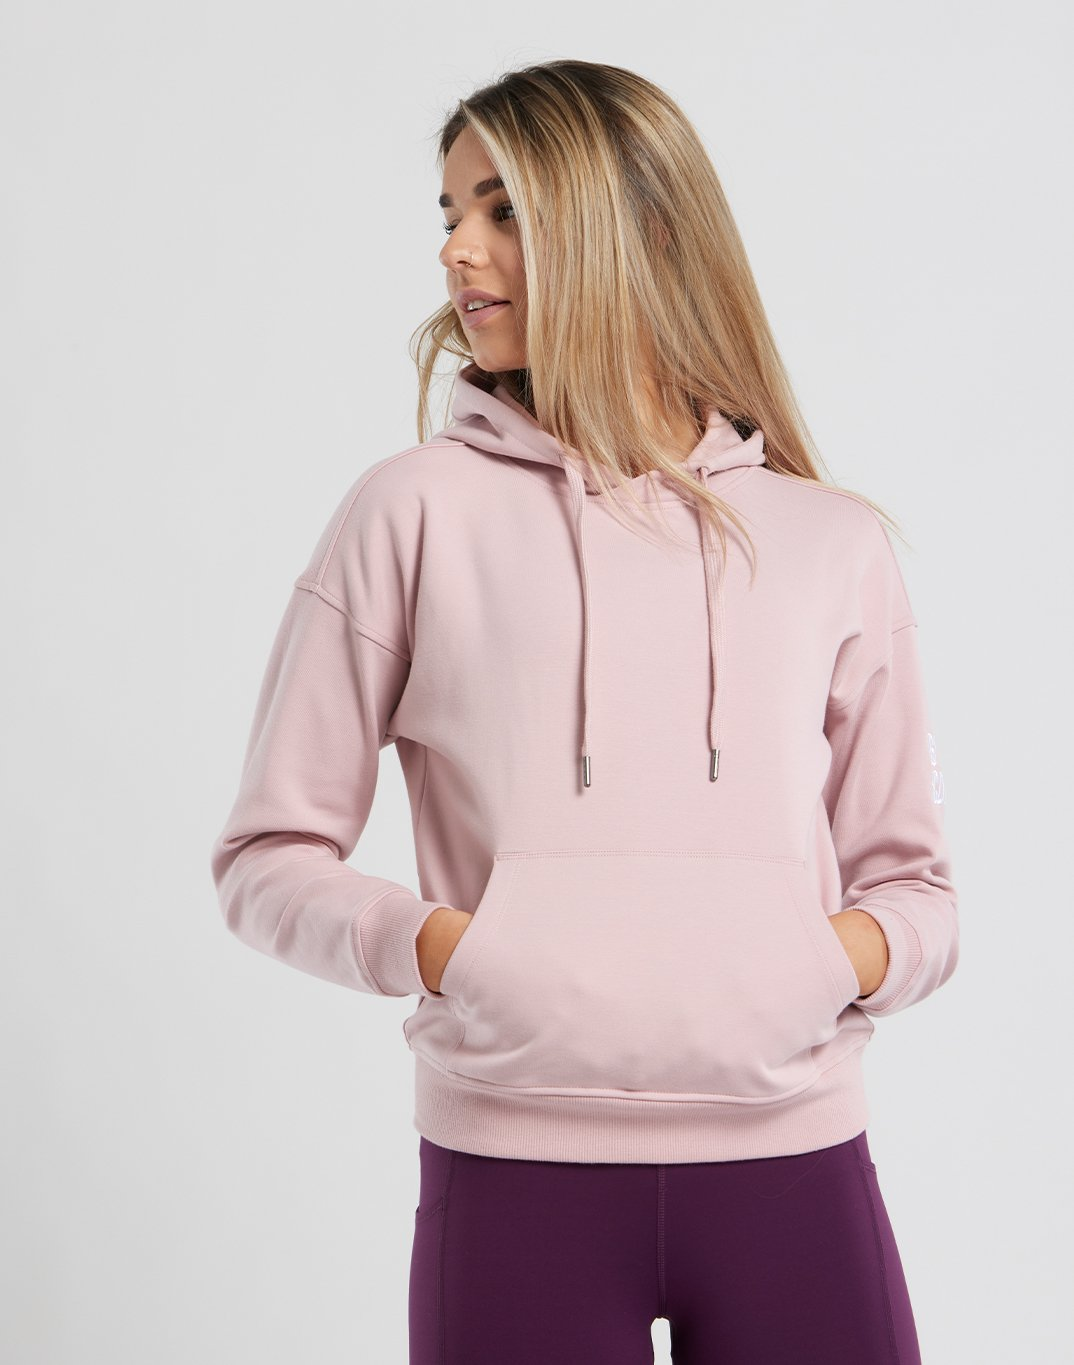 Gym Plus Coffee Hoodie Womens Chill Pullover in Dusty Pink Designed in Ireland